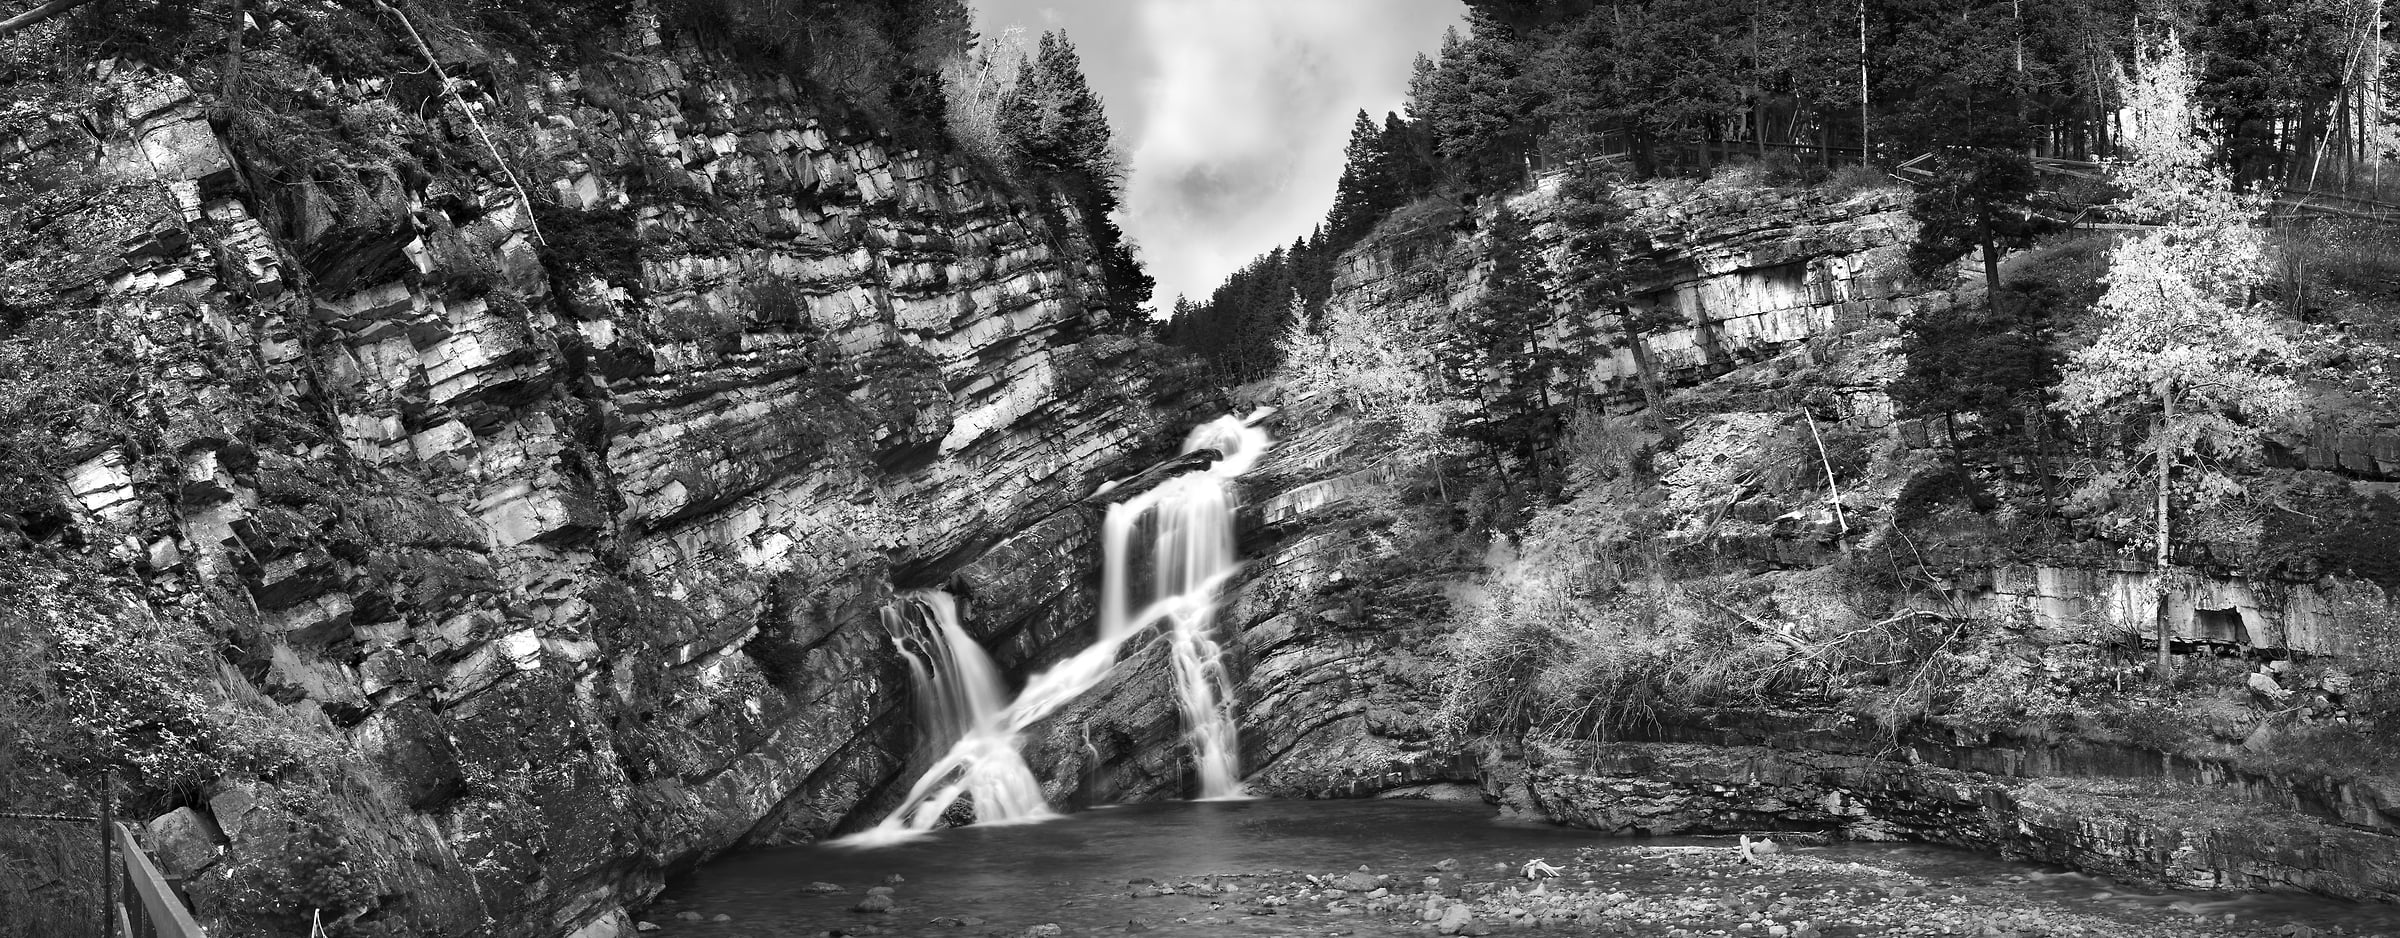 A very high resolution, large-format VAST photo print of Cameron Falls waterfall in Waterton Lakes National Park; fine art nature photograph created by Steven Webster in Alberta, Canada